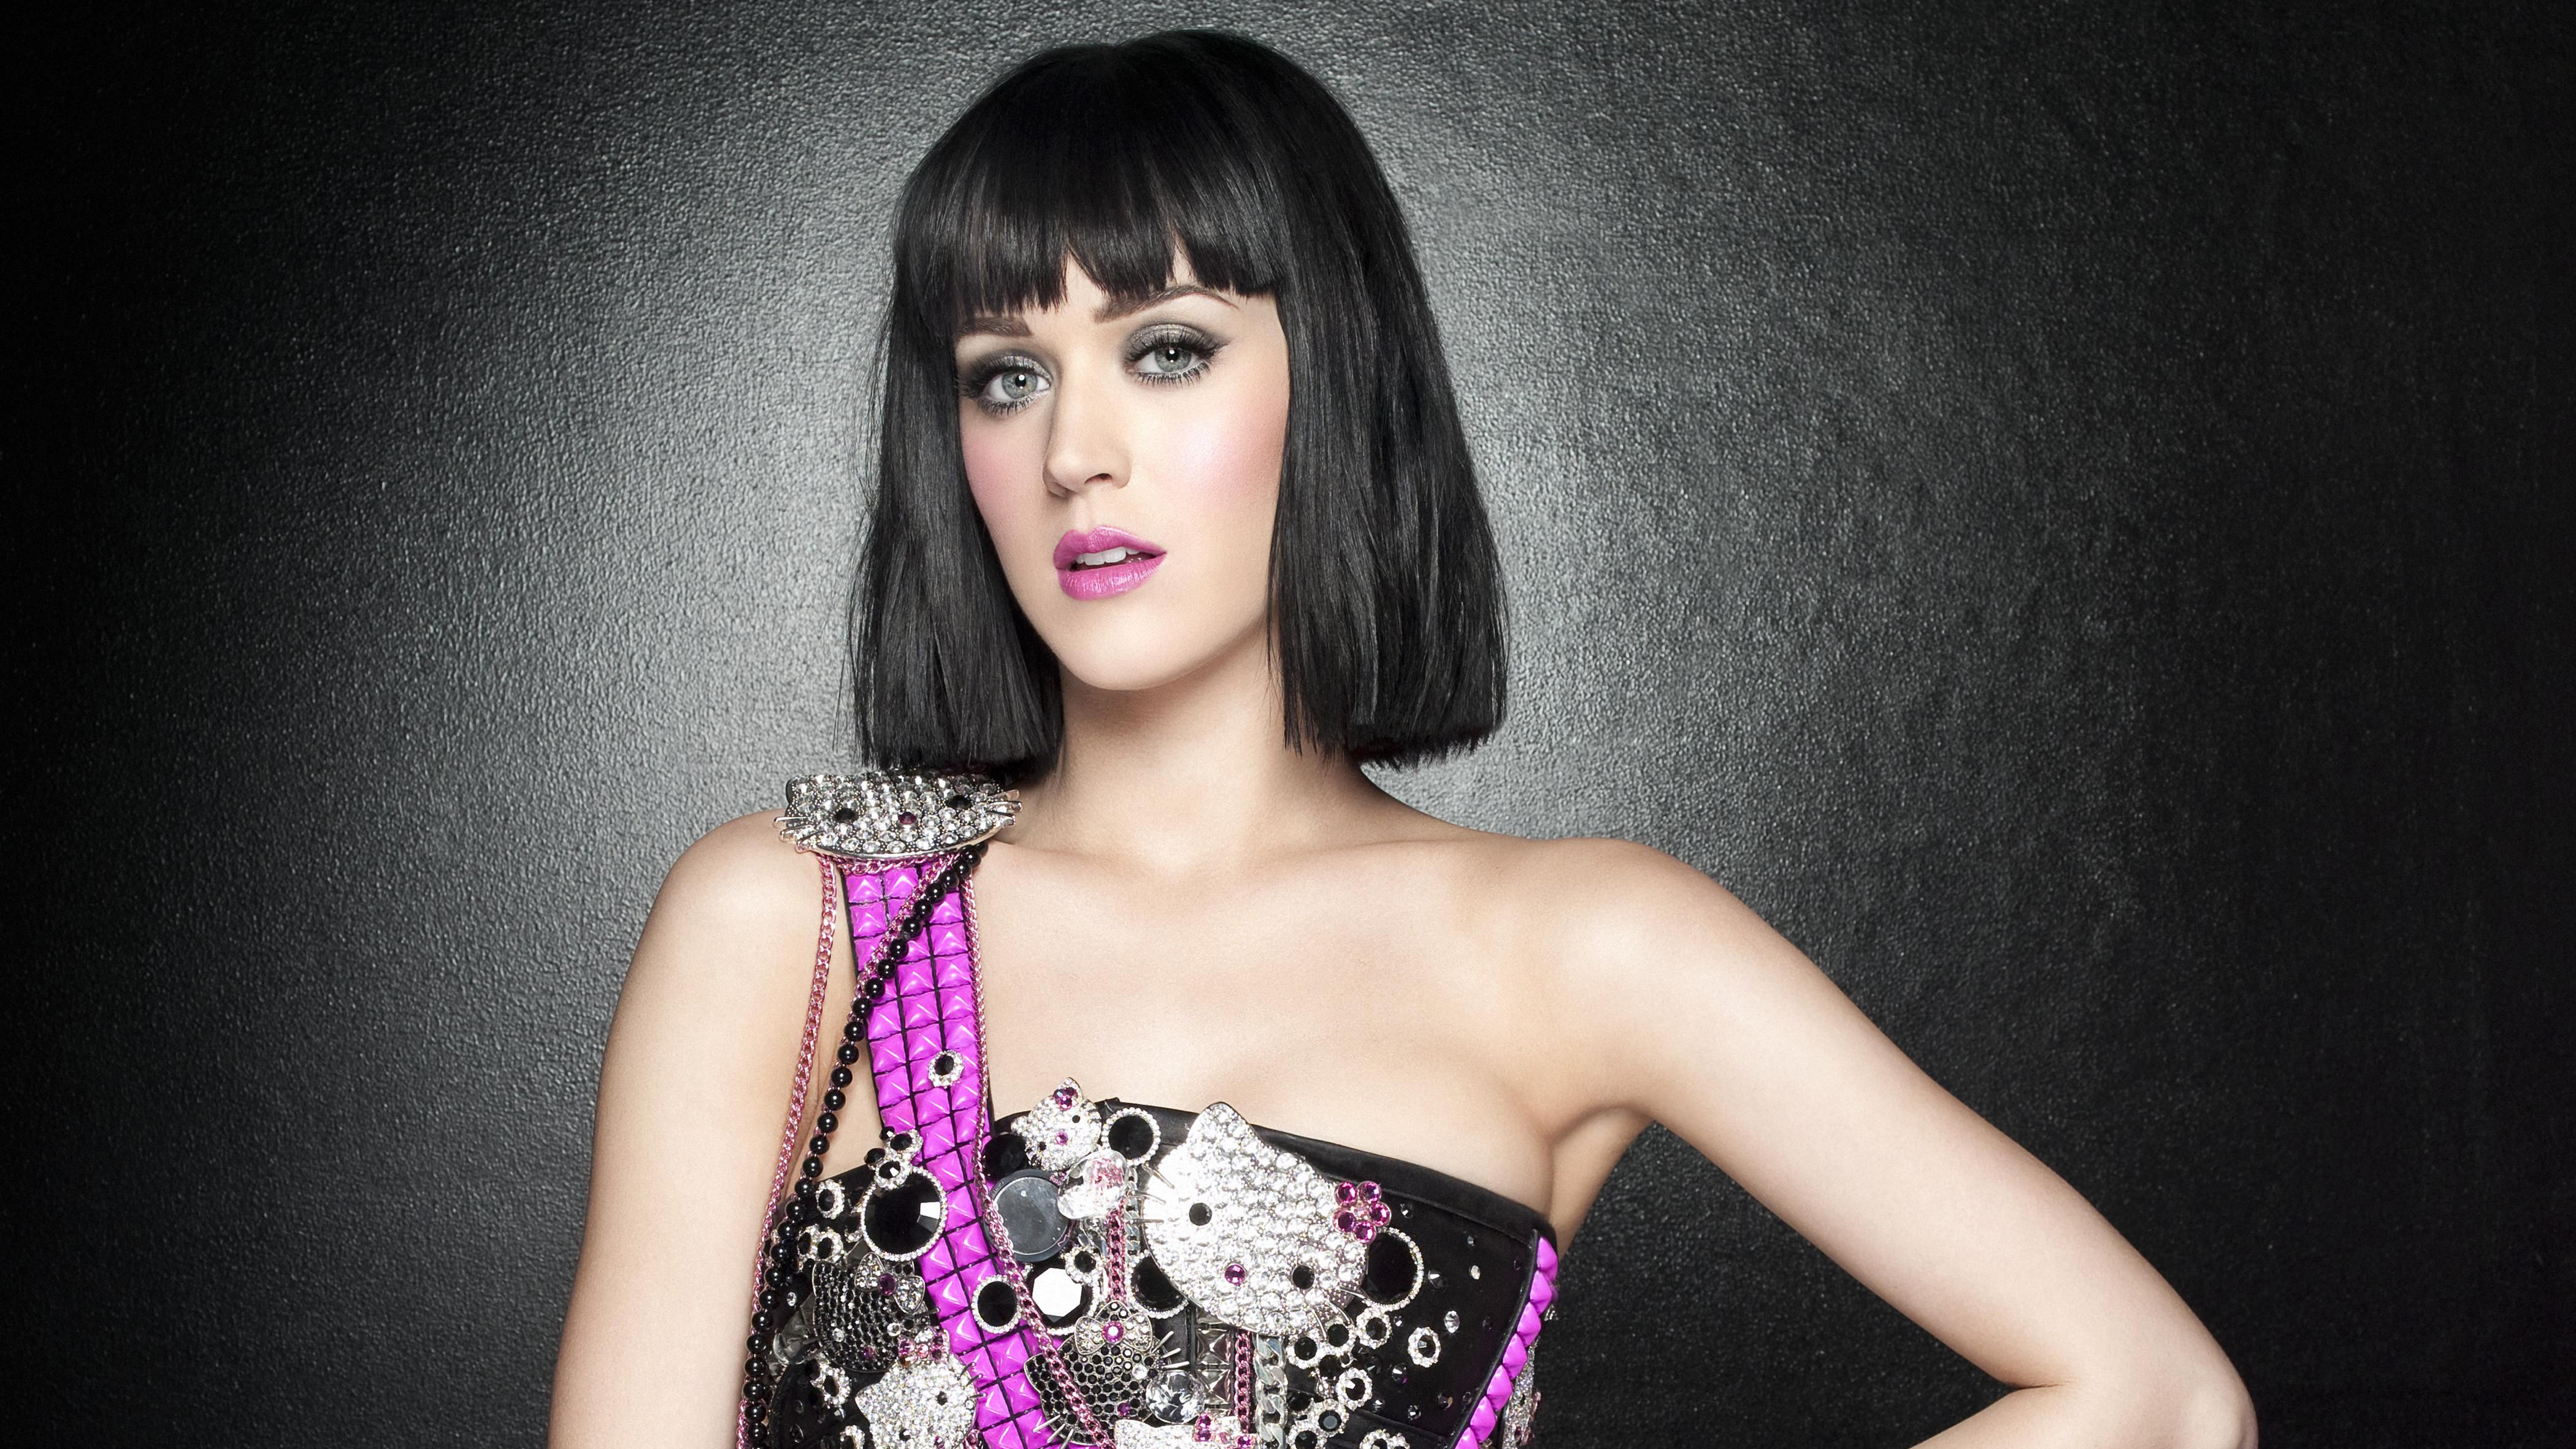 Katy Perry Facts & Wiki